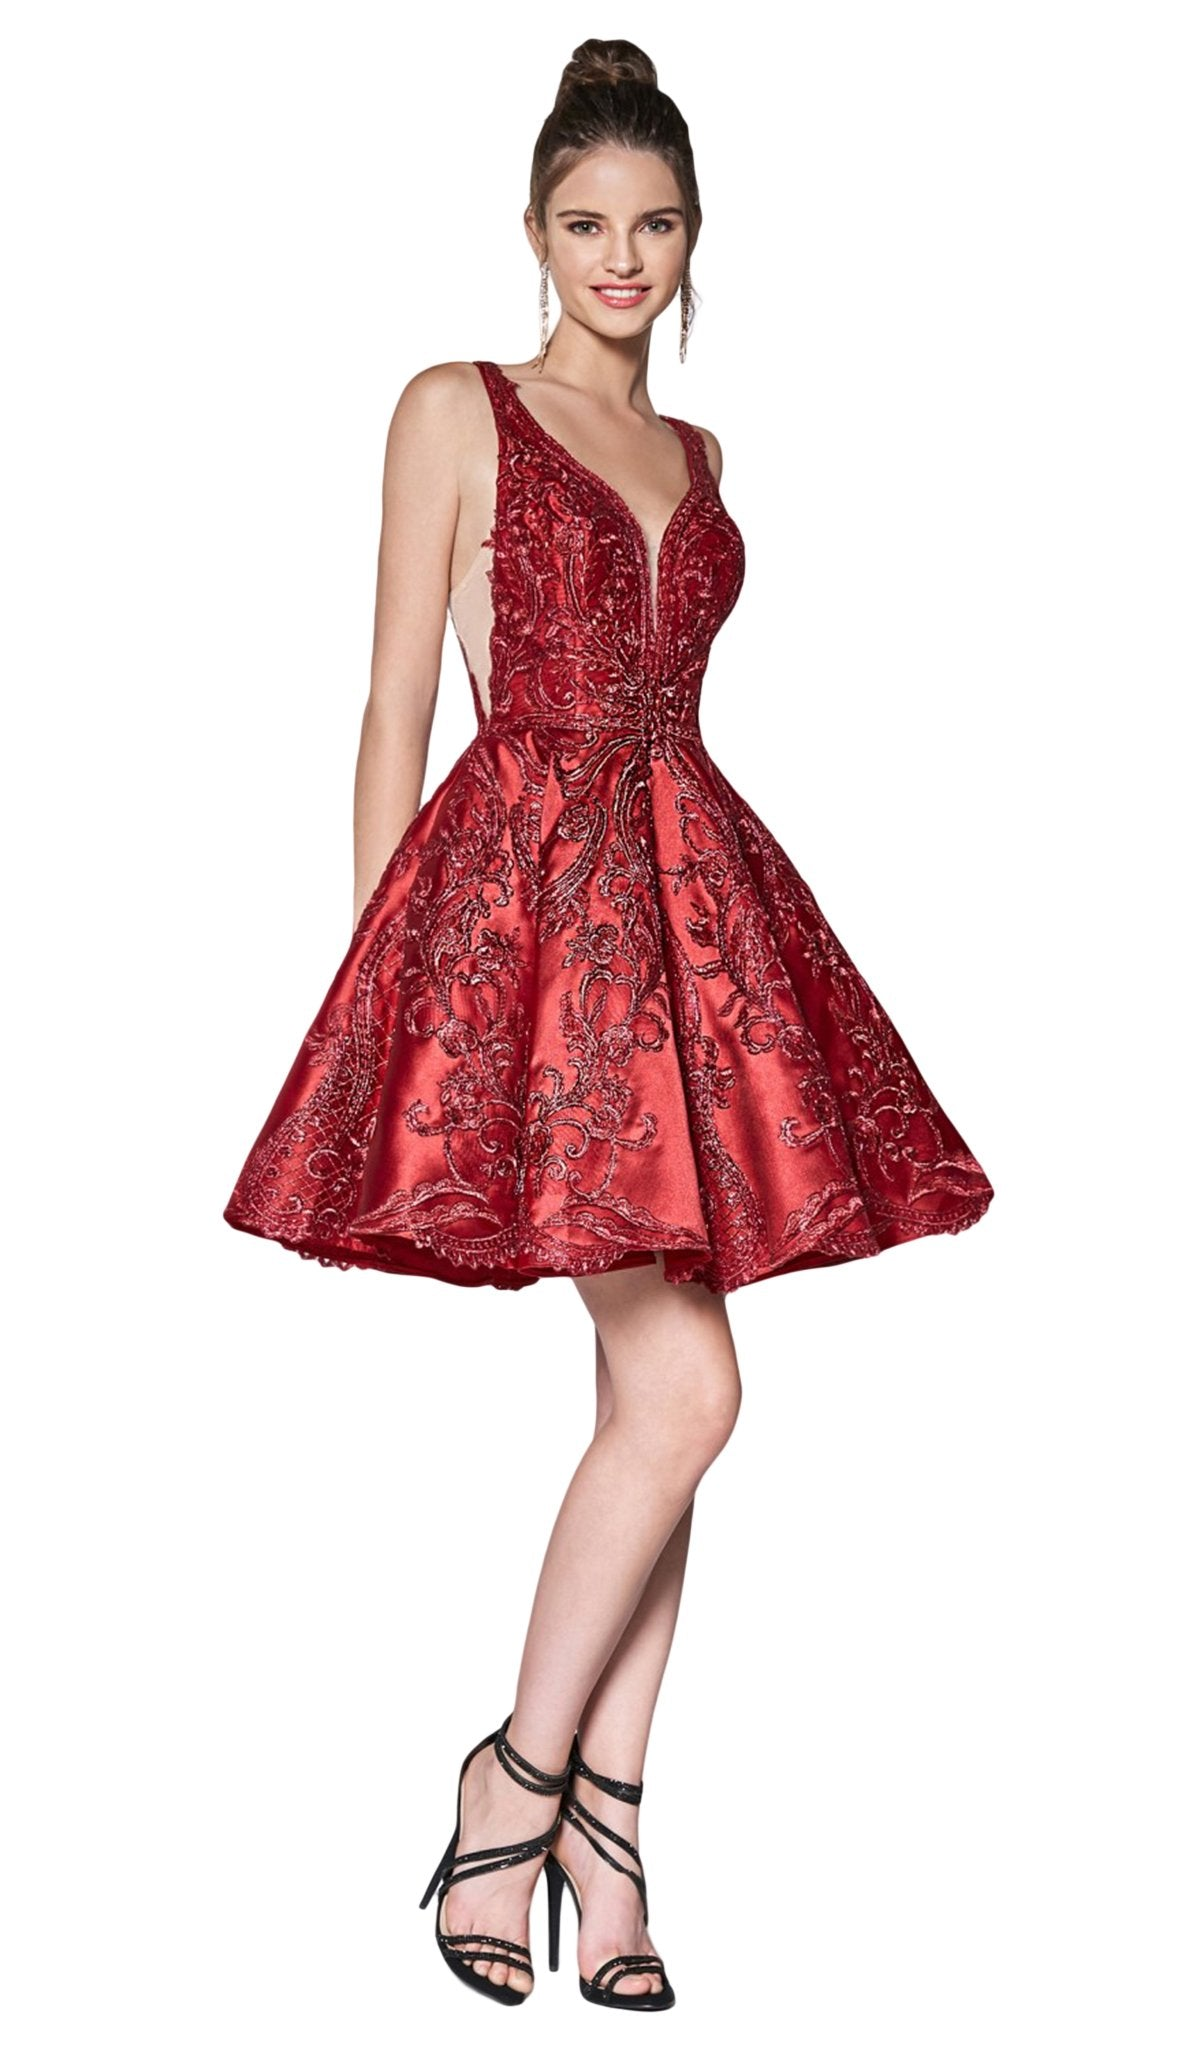 Cinderella Divine - CM302 Embroidered Plunging Sweetheart A-Line Dress In Red